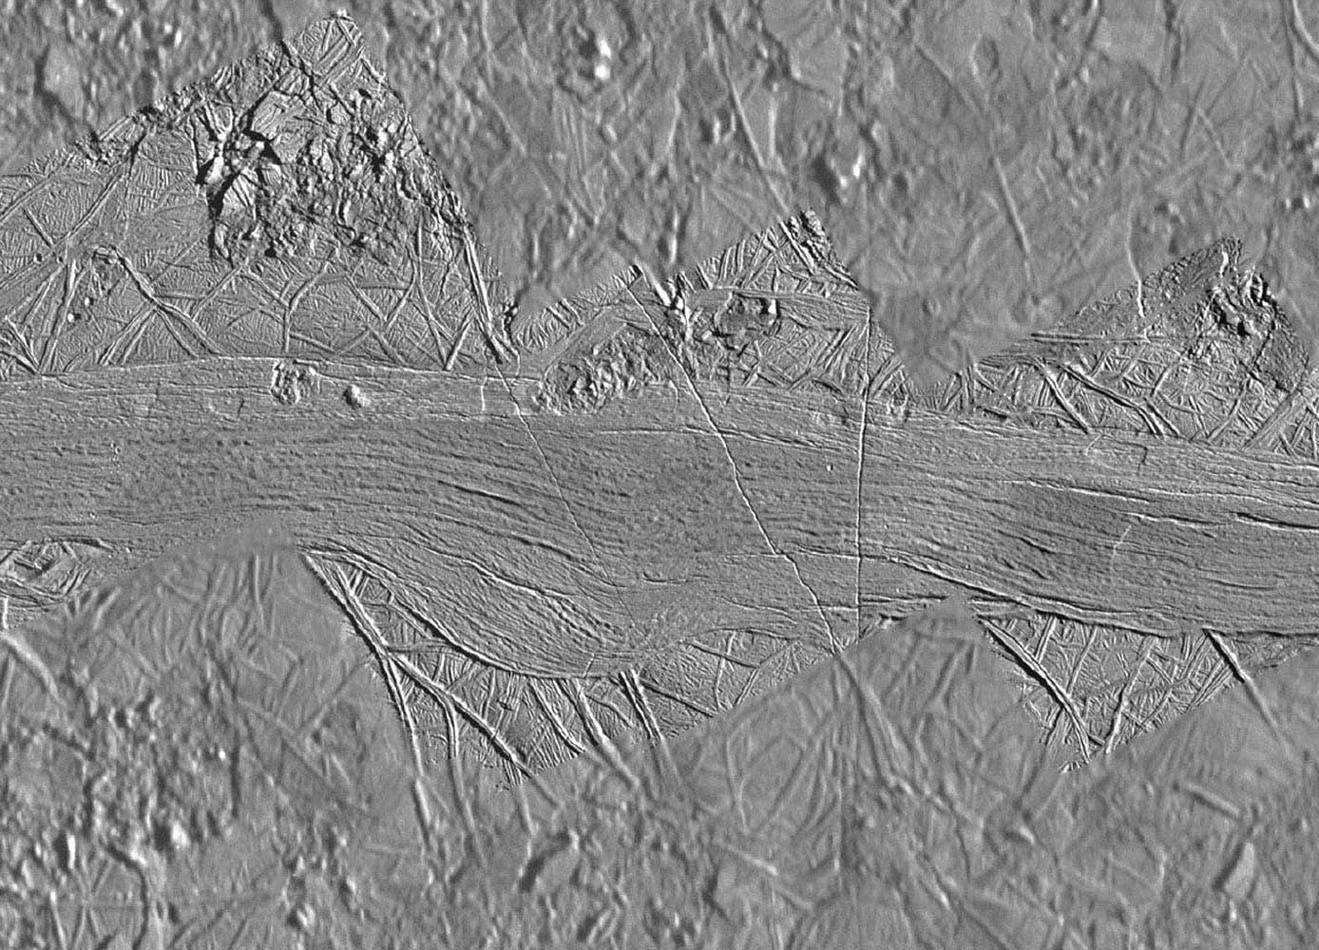 Agenor Linea is an unusual feature on Jupiter's icy moon Europa since it is brighter than its surroundings while most of Europa's ridges and bands are relatively dark. High resolution images of Agenor Linea captured by NASA's Galileo spacecraft.